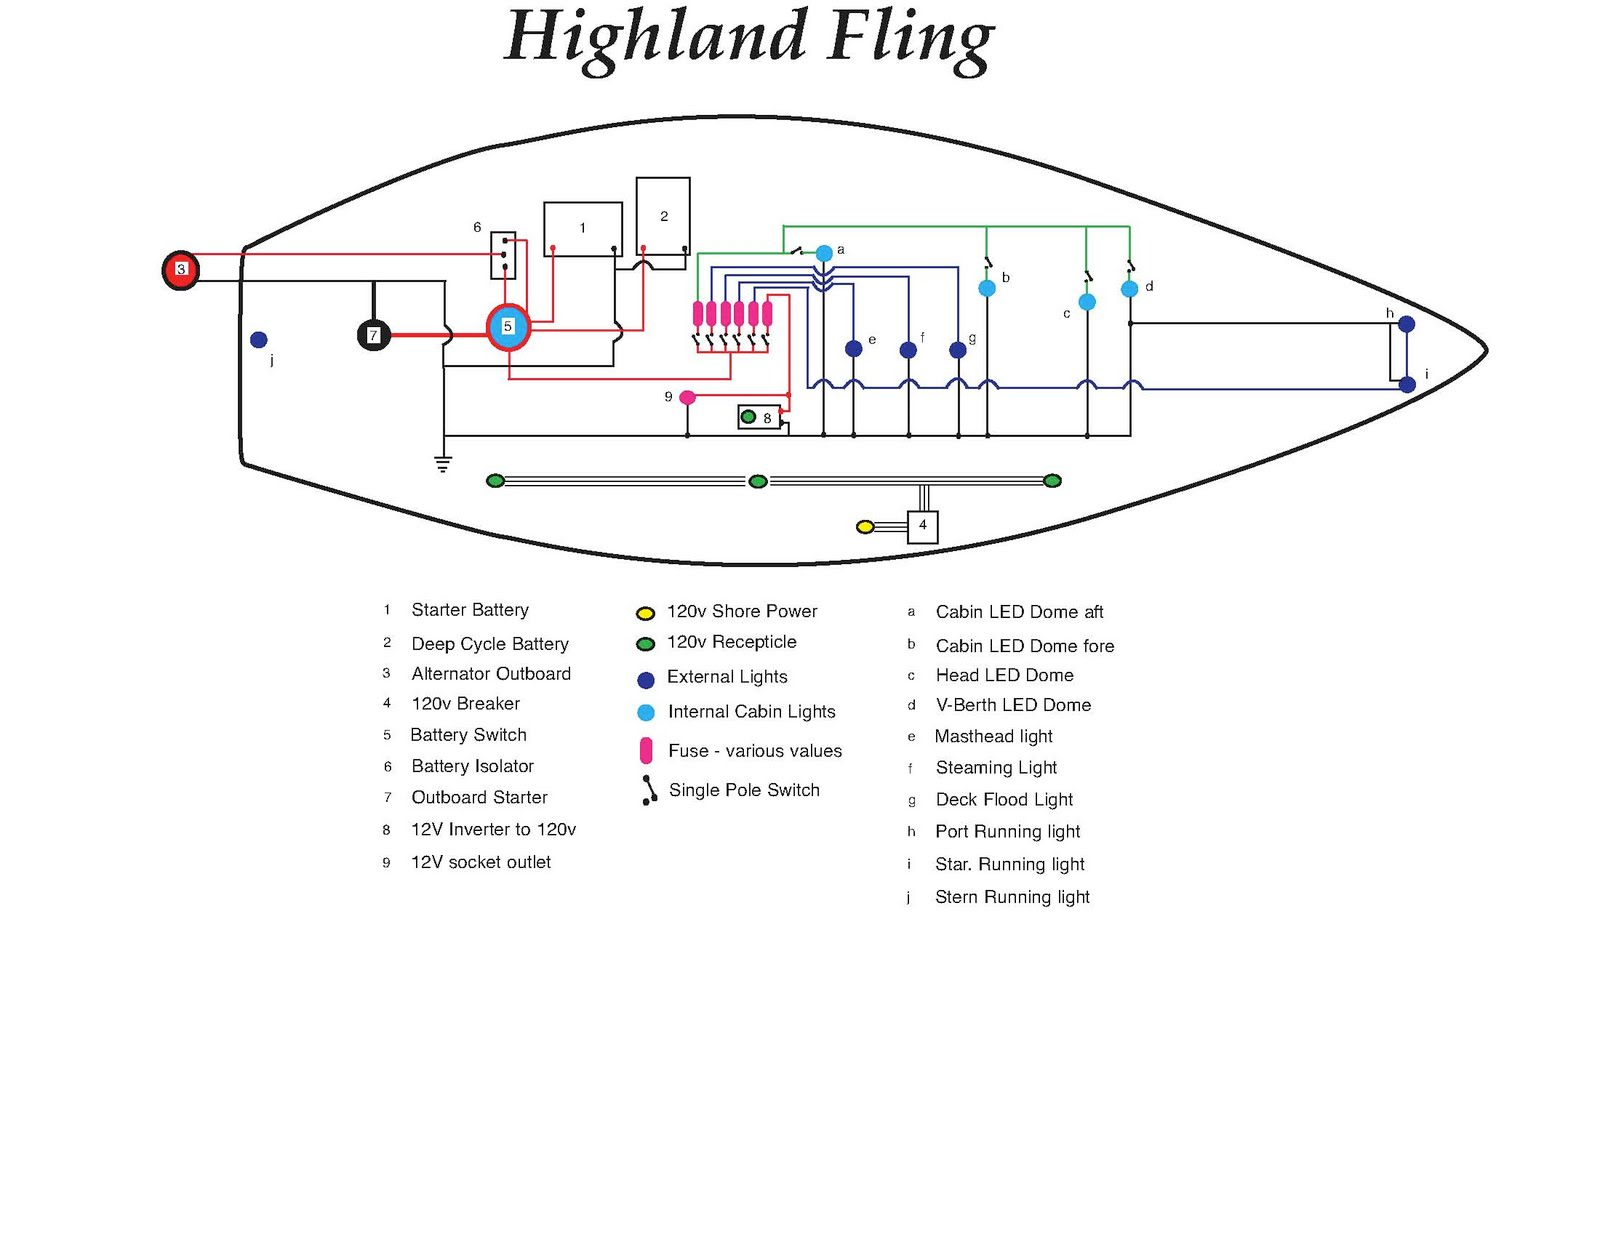 Highland Fling  My Grampian 26 Sailboat  Wiring Project